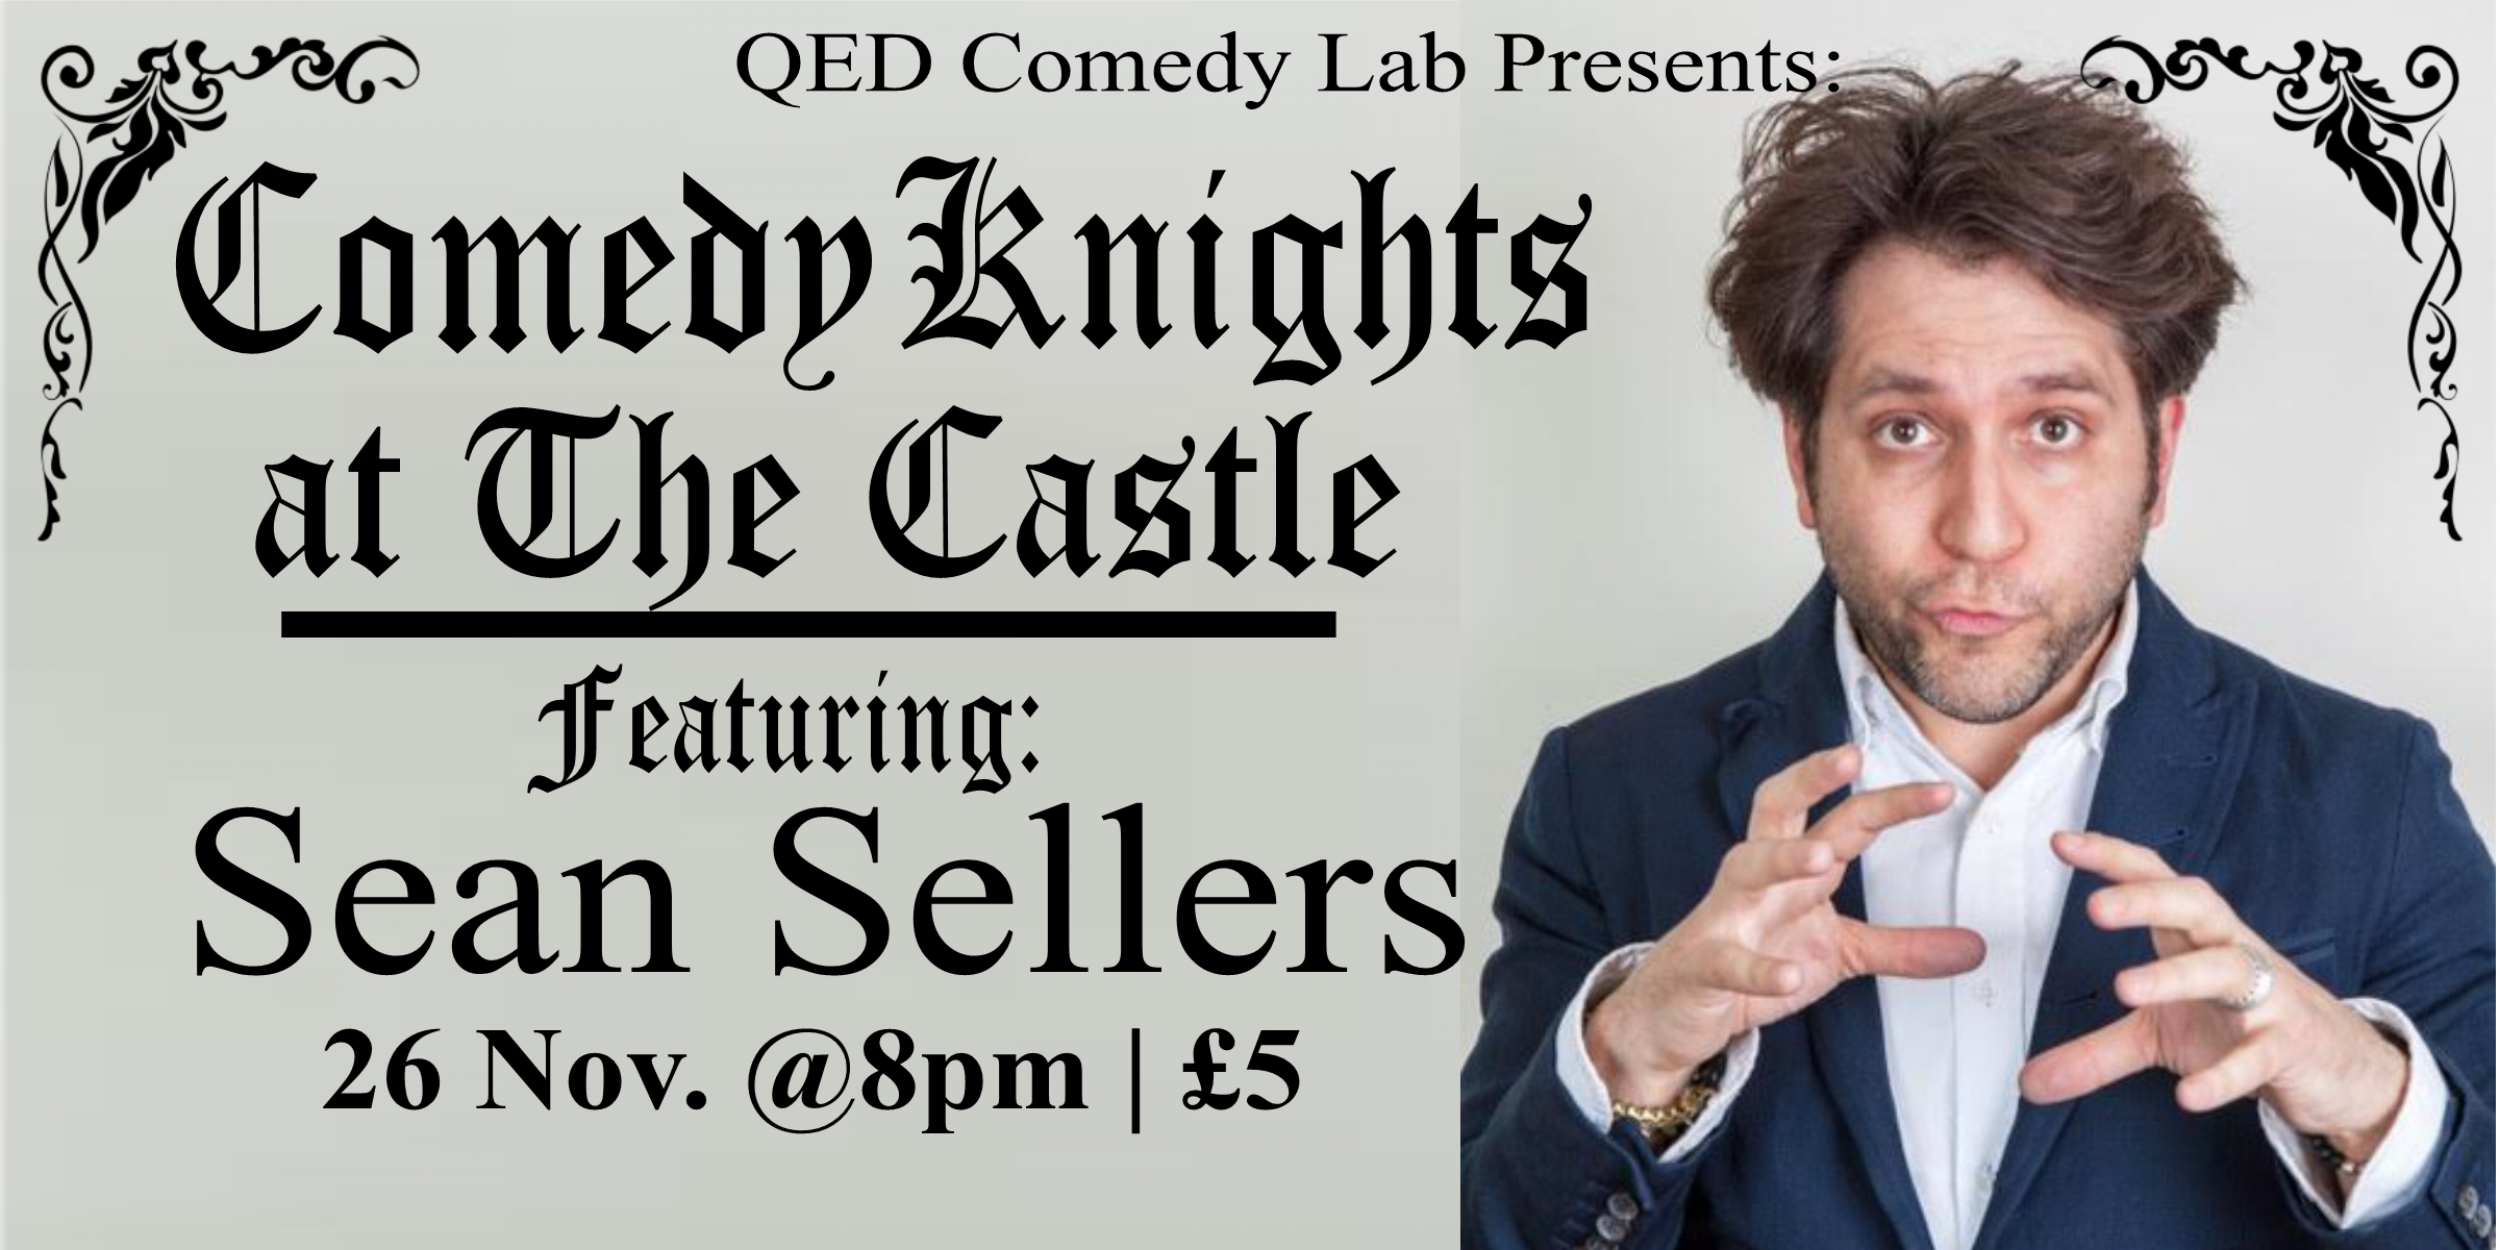 On a quest for the funniest evening in Oxford? Here it is! Join us at the newly renovated Castle Tavern for Comedy Knights, a monthly stand-up showcase that features some of the finest local and national comedians around - but instead of the high comedy club price tag, it's just £5 in advance/£6 at the door. And for students (with valid ID) it is only £3 in advance/£5 at the door.  This month we have a special guest headliner Sean Sellers! Known as one of the best dressed men in British comedy, Sean's all about attitude and charisma. Part attention-seeker, part people-pleaser, his stand up is a high-energy blend of pop culture references, personal anecdotes, and playful punchlines.  Also featuring four other great comedians from all over the UK and hosted by Anna Dominey  Doors at 7:30/Show at 8:00pm £5 in advance/£6 at the door   Get your tickets Here!